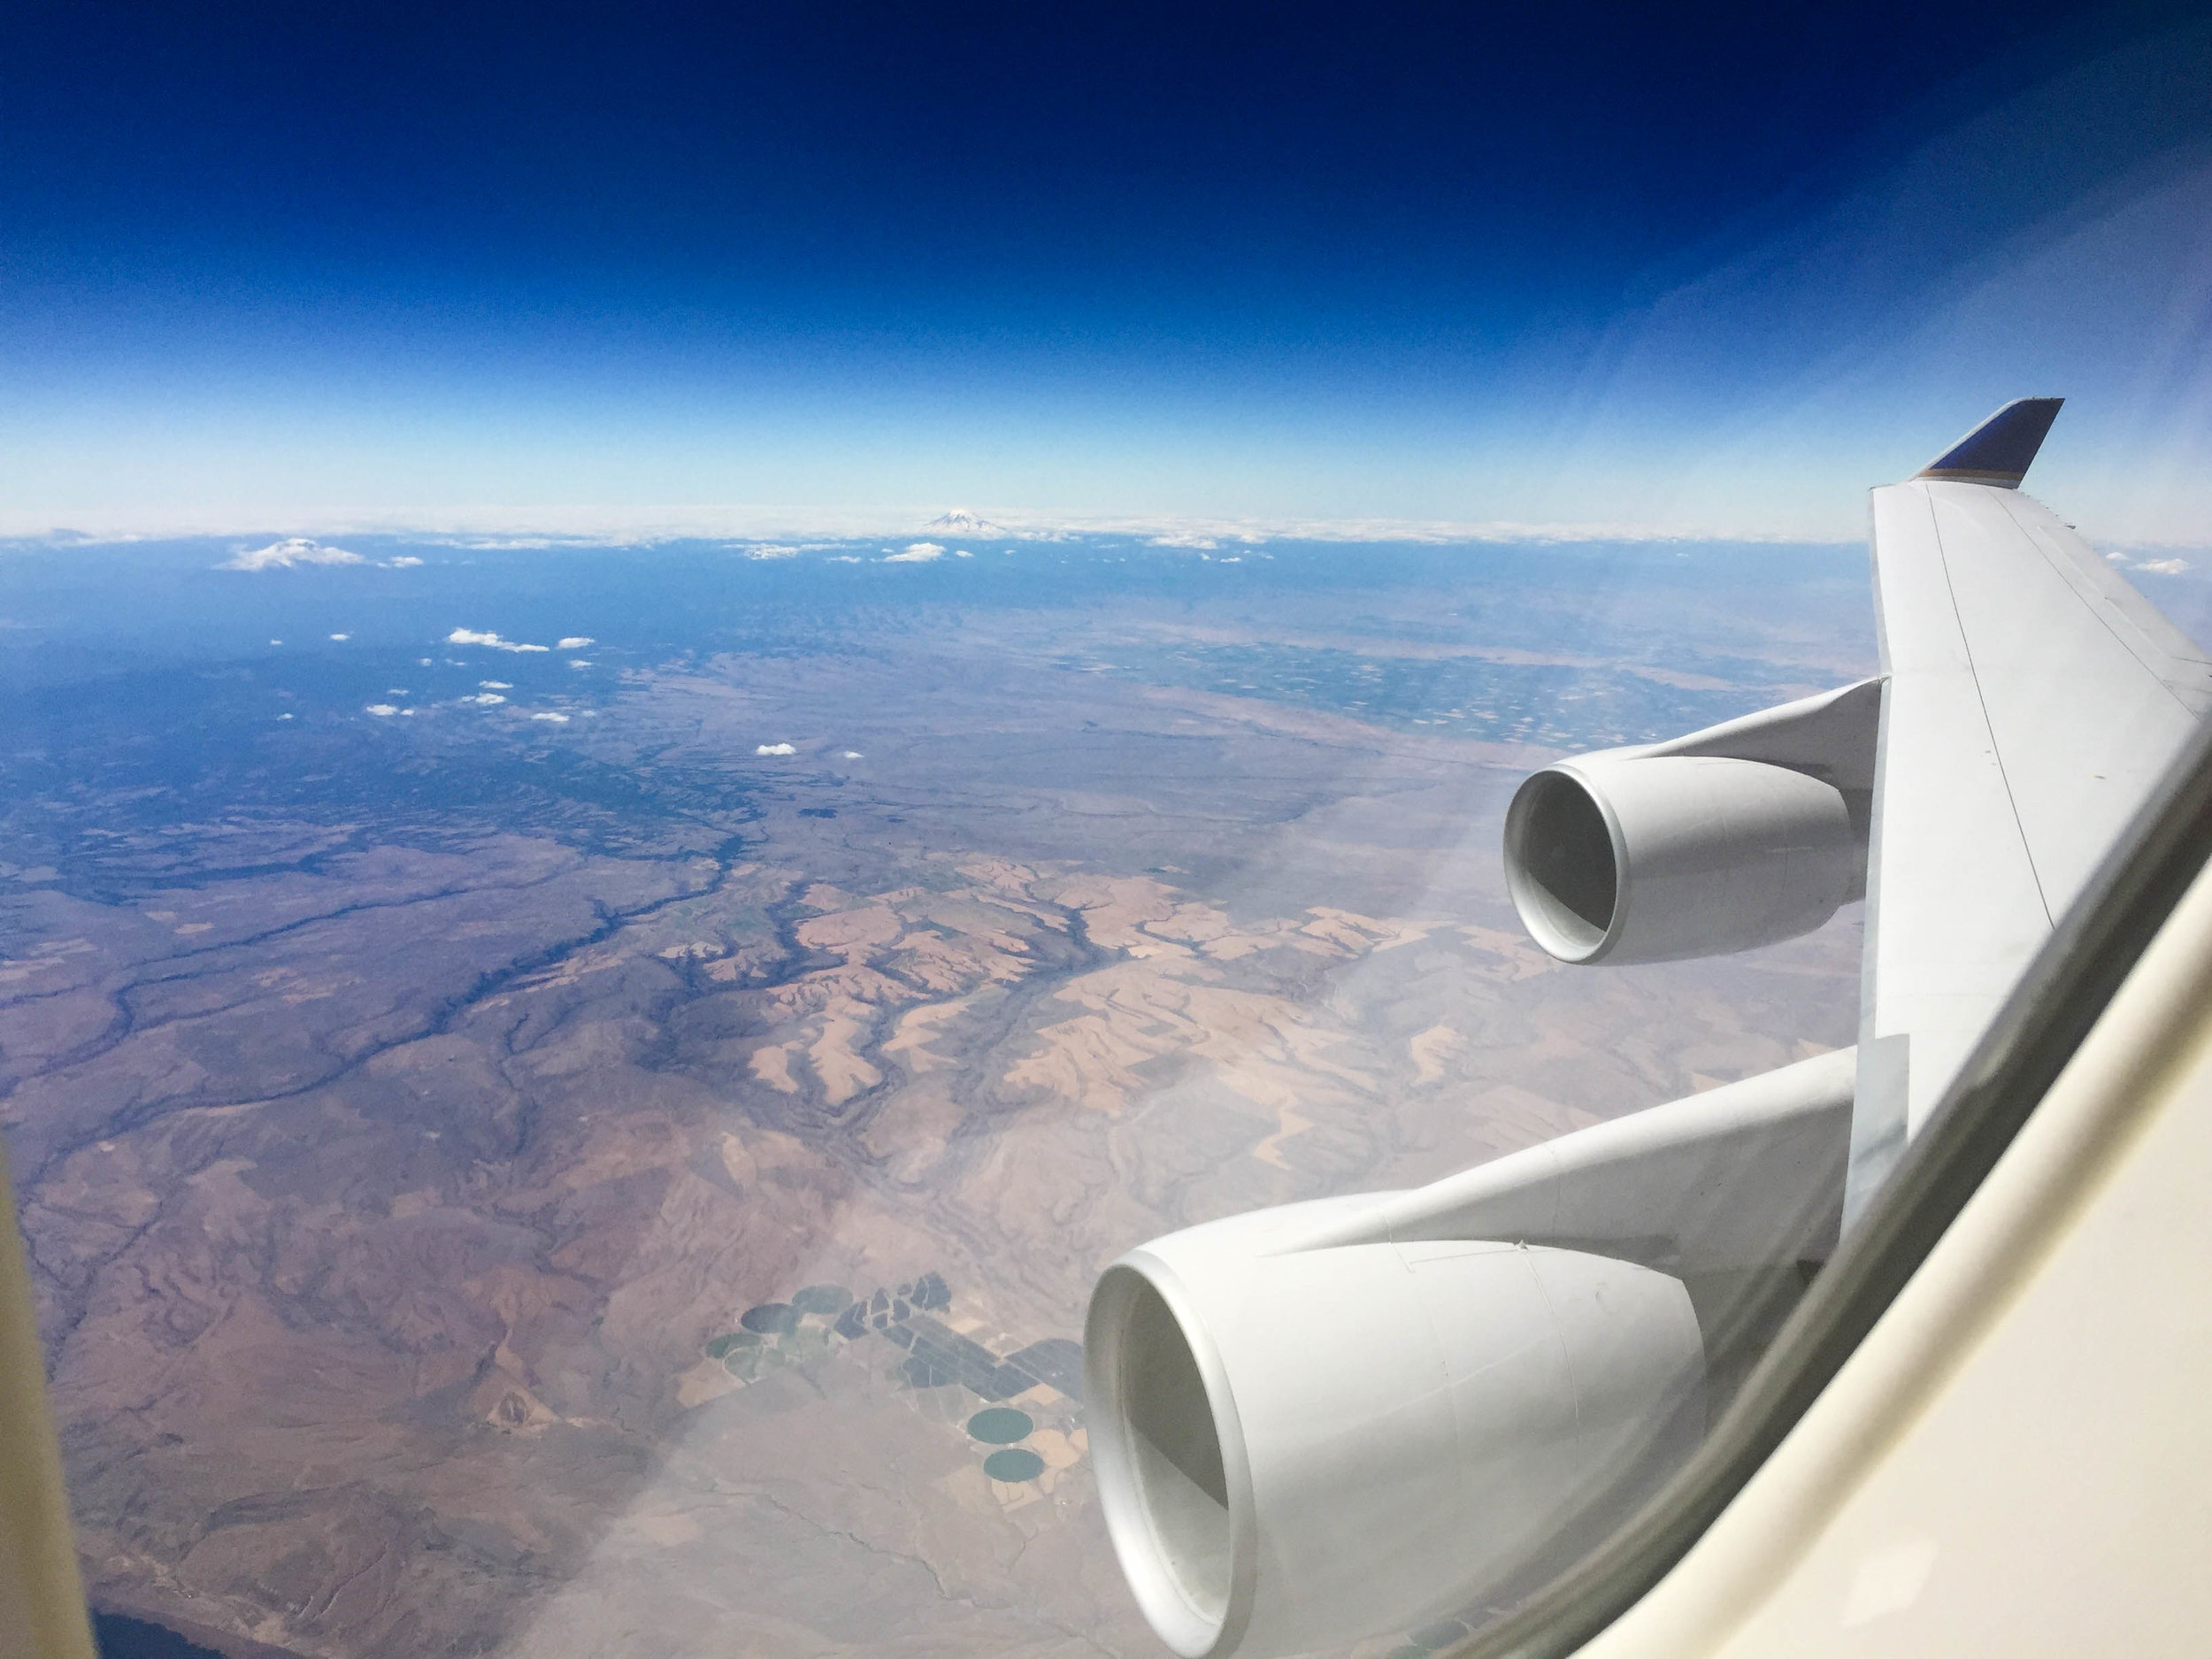 And finally, the view of those massive wings and engines somewhere over South Eastern Oregon!